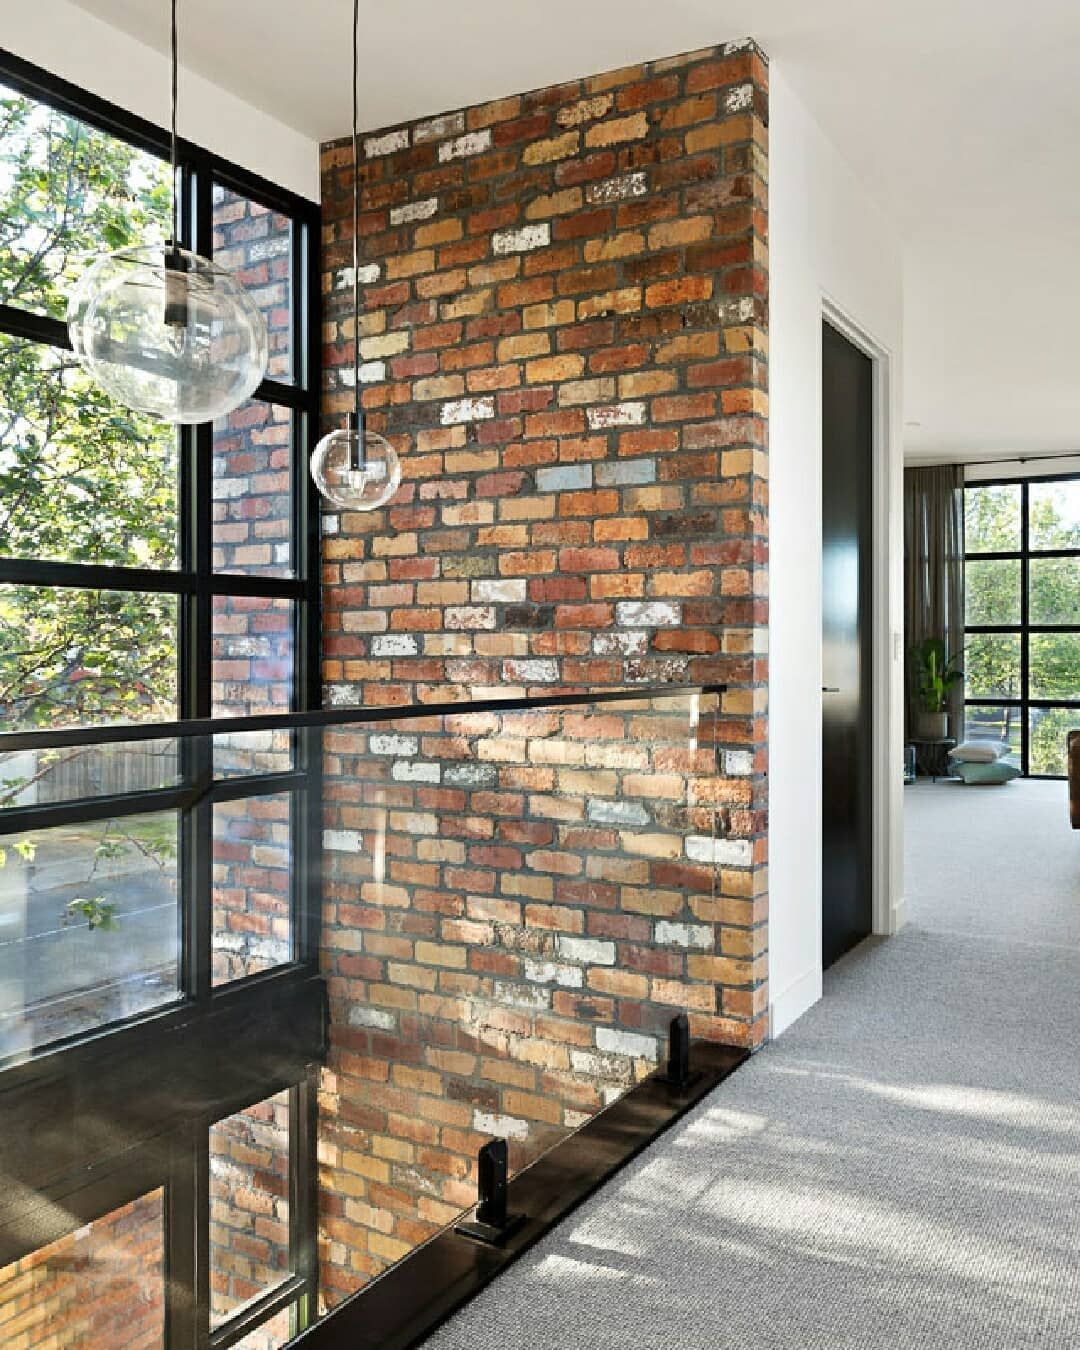 Double Height Recycled Brick Wall Glass Balustrade And Statement Windows In This Retreat Space In 2020 Recycled Brick Brick Wall Glass Balustrade